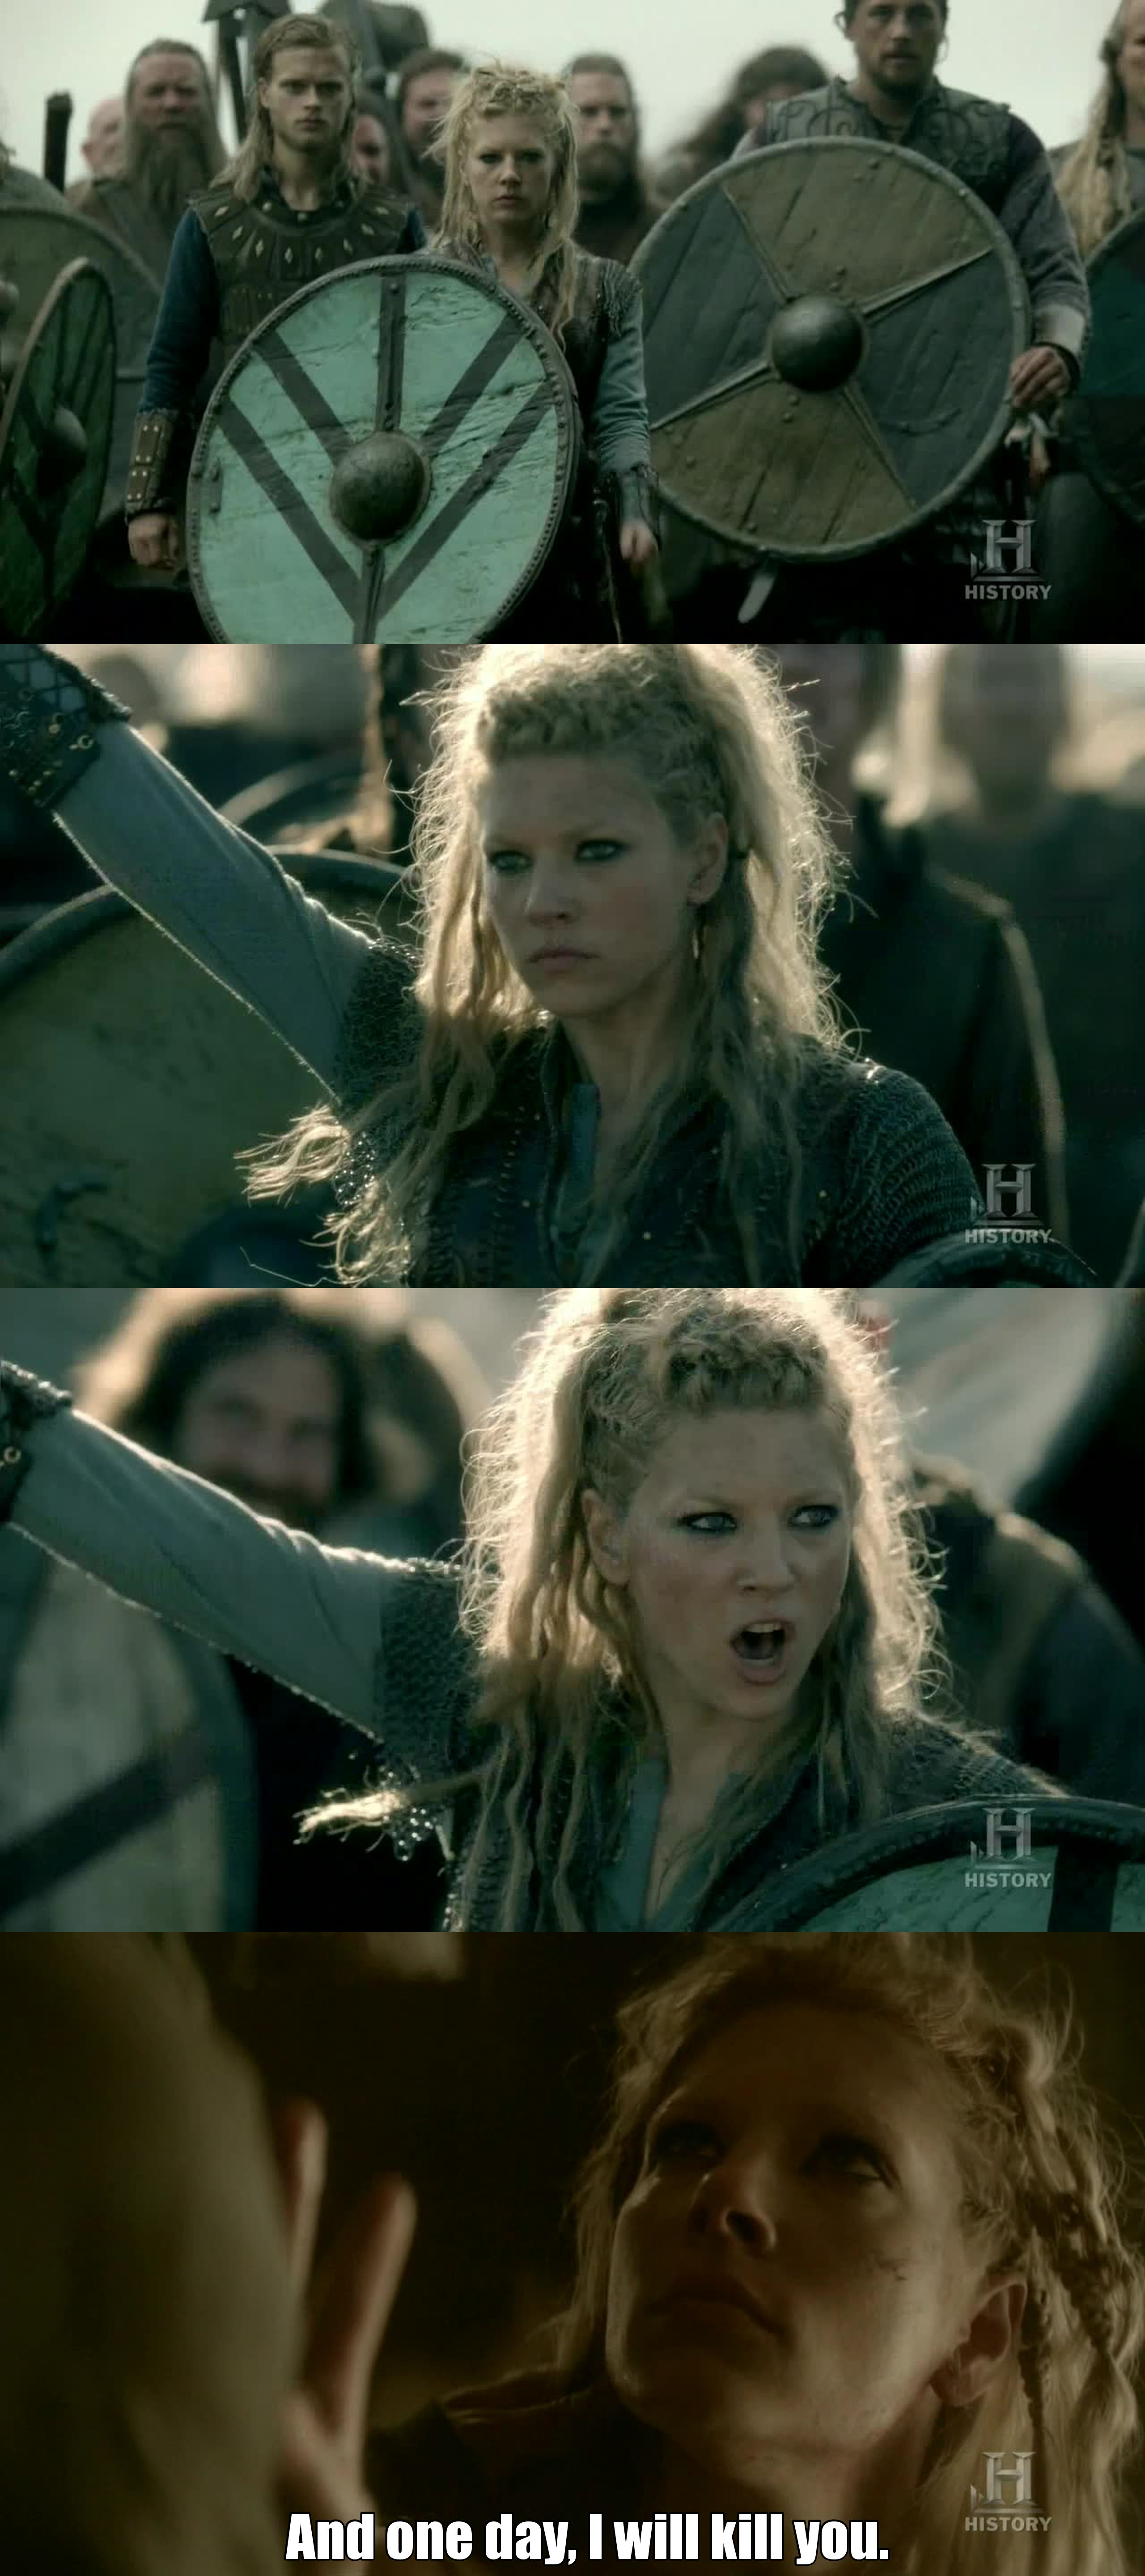 Where can I find a woman like Lagertha? I love her. She is smart, independent, brave and so hot.